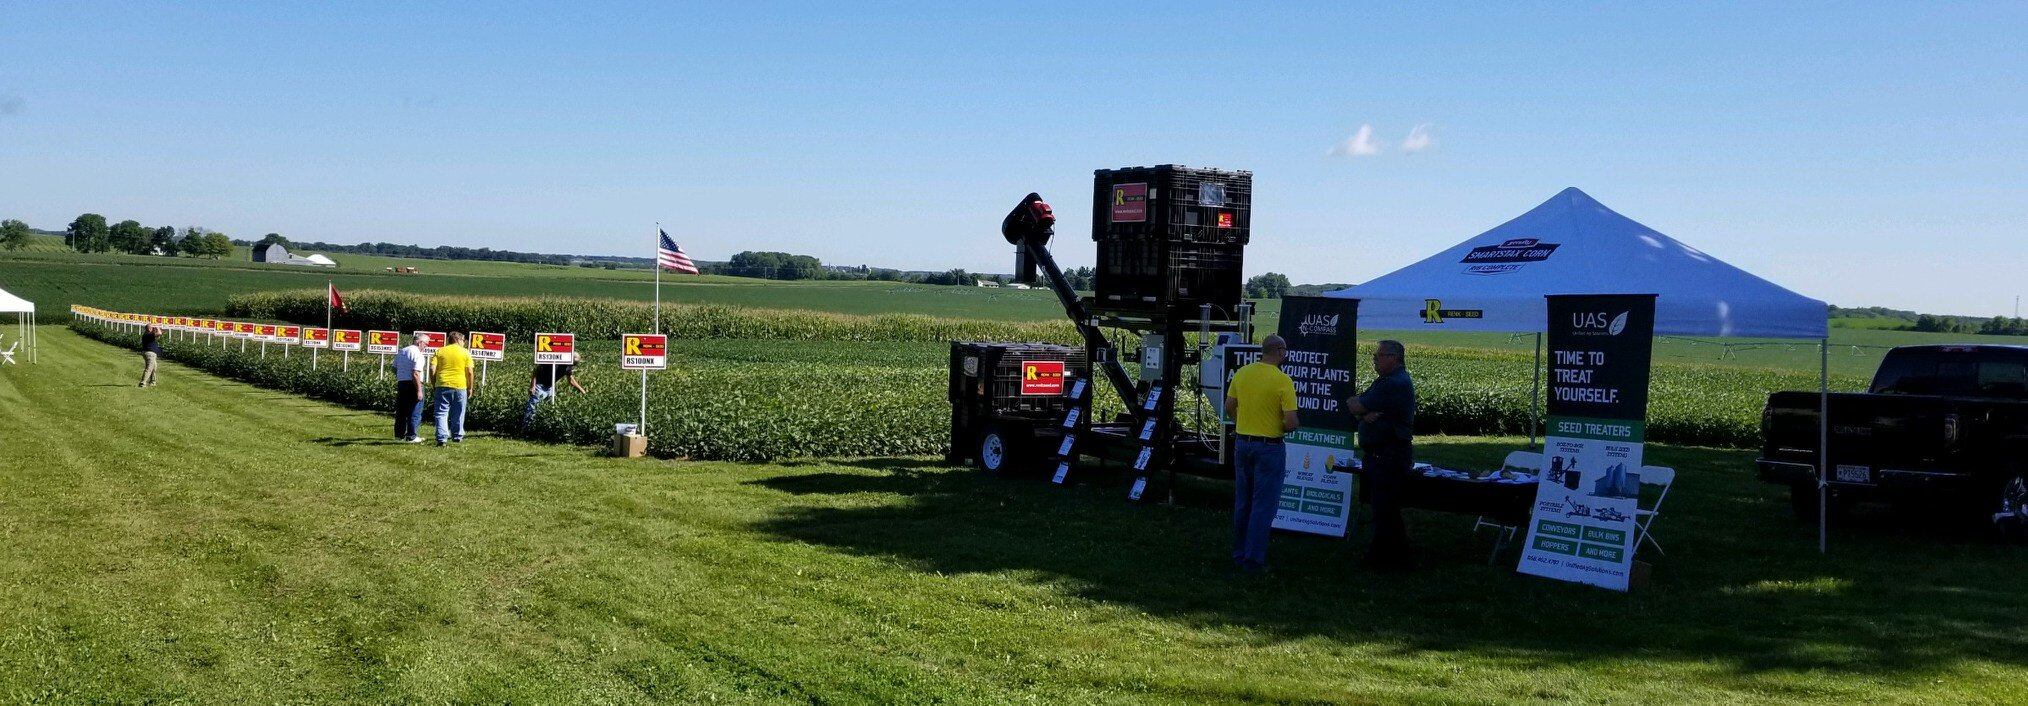 Renk Seed Field Day Booth.jpg